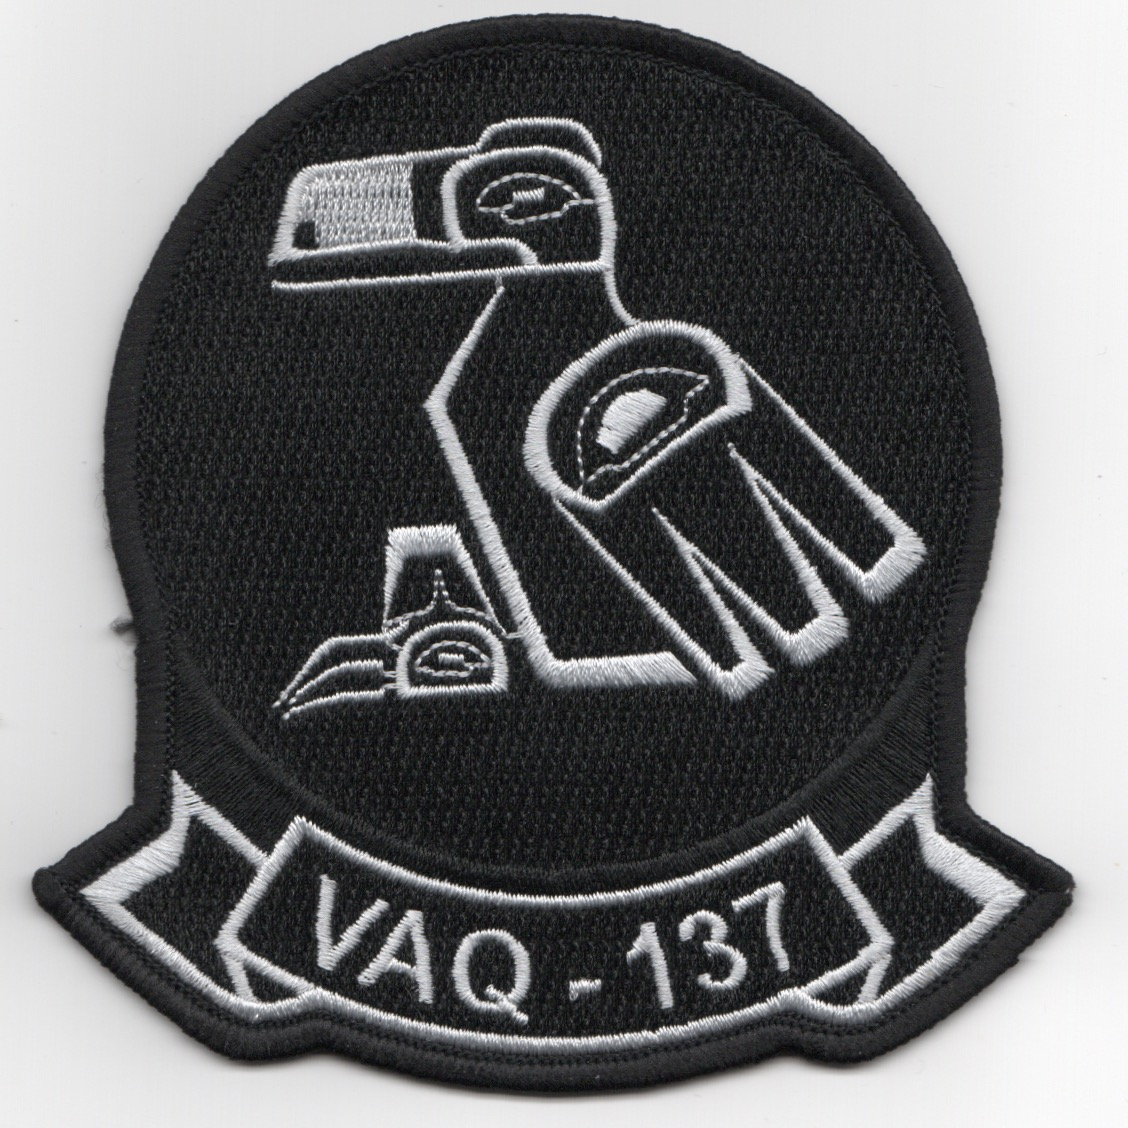 VAQ-137 Squadron Patch (Black)